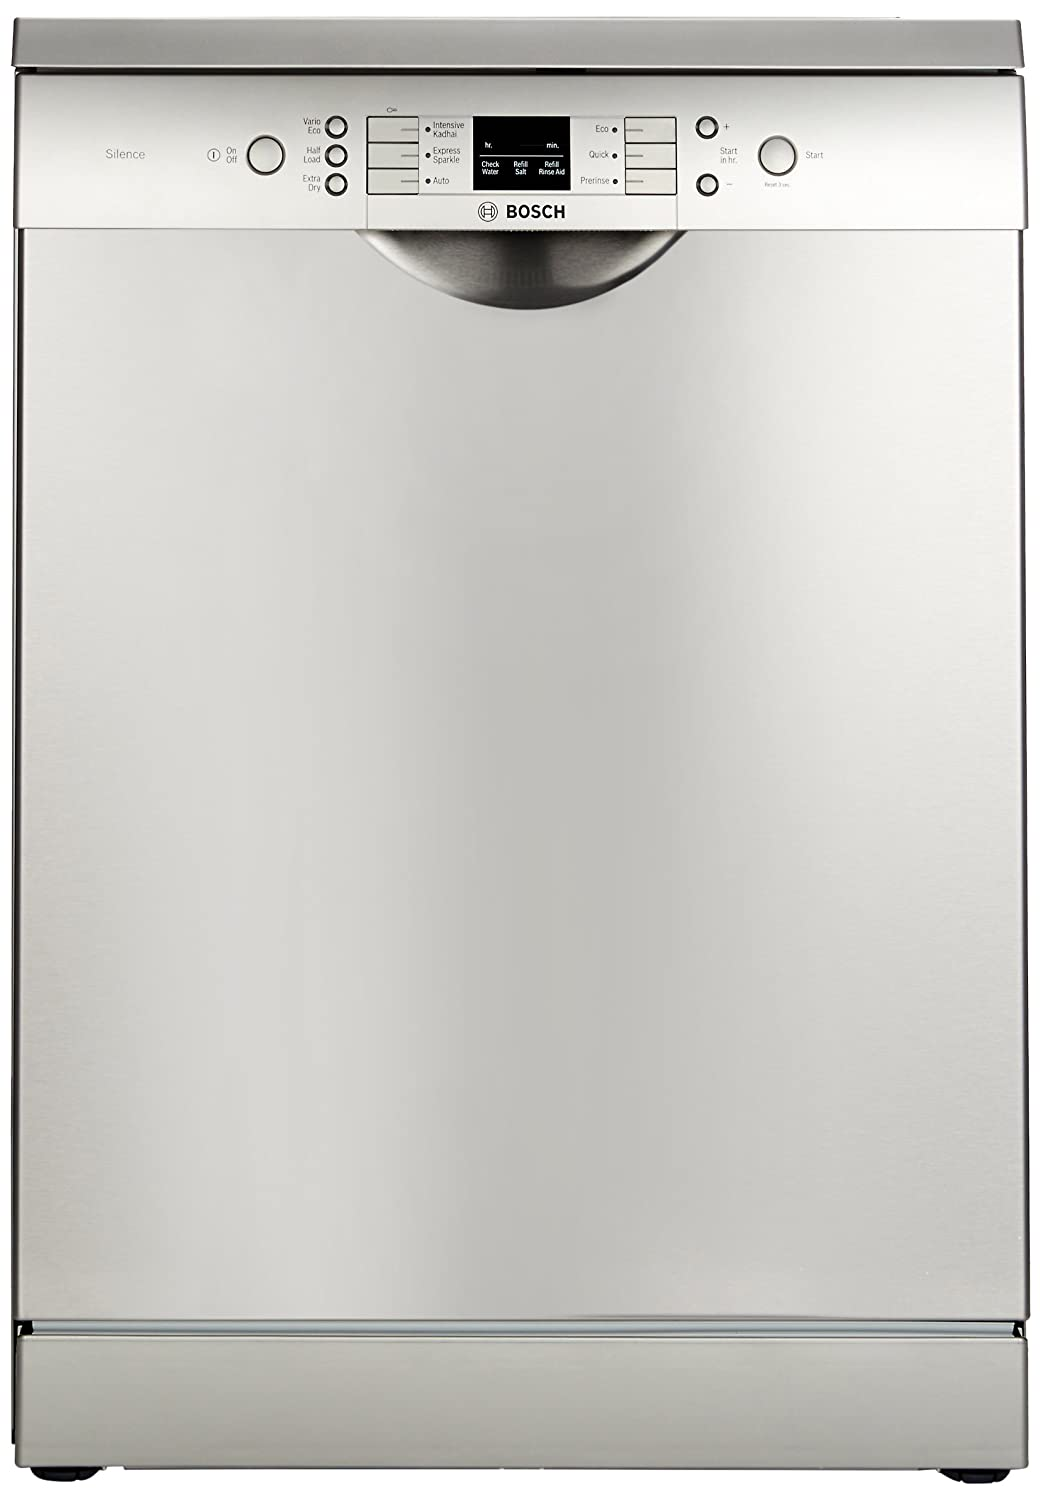 18 Inch Dishwasher Bosch Bosch Free Standing 12 Place Settings Dishwasher Sms60l18in